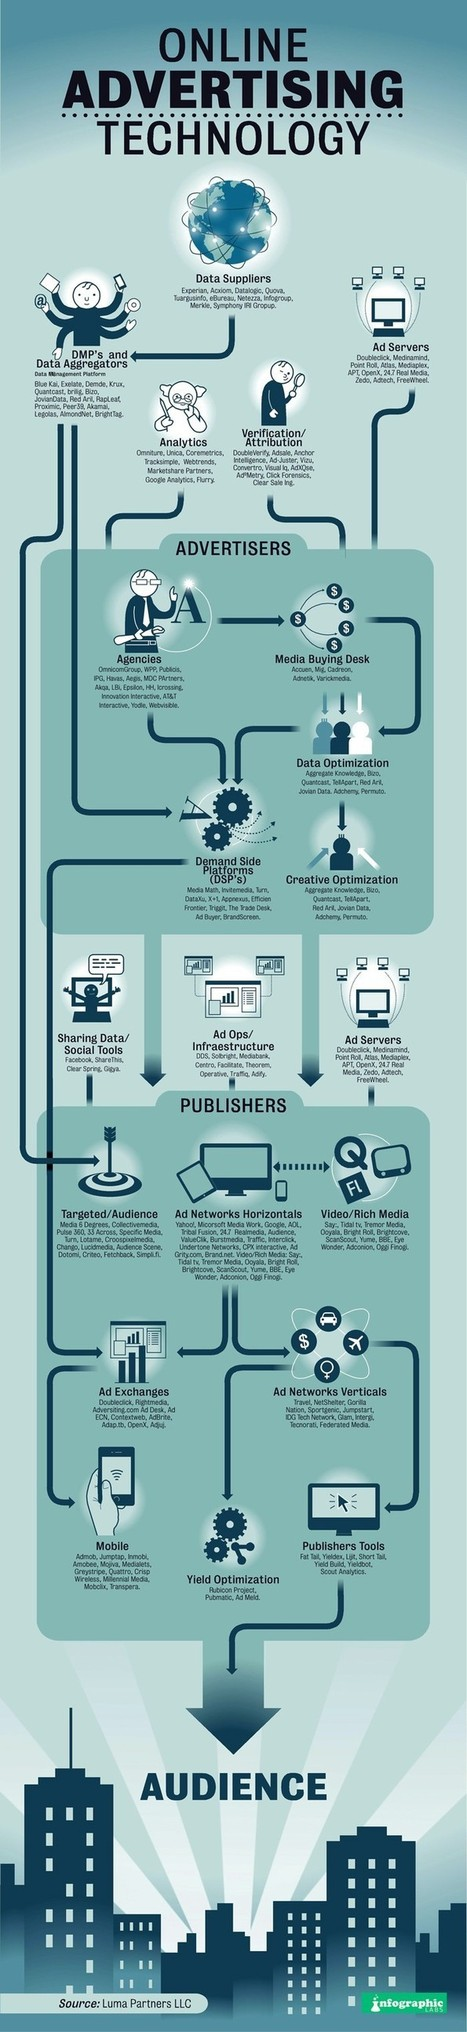 Online World: How Big is Advertisers, Publishers & Audience   MarketingHits   Scoop.it